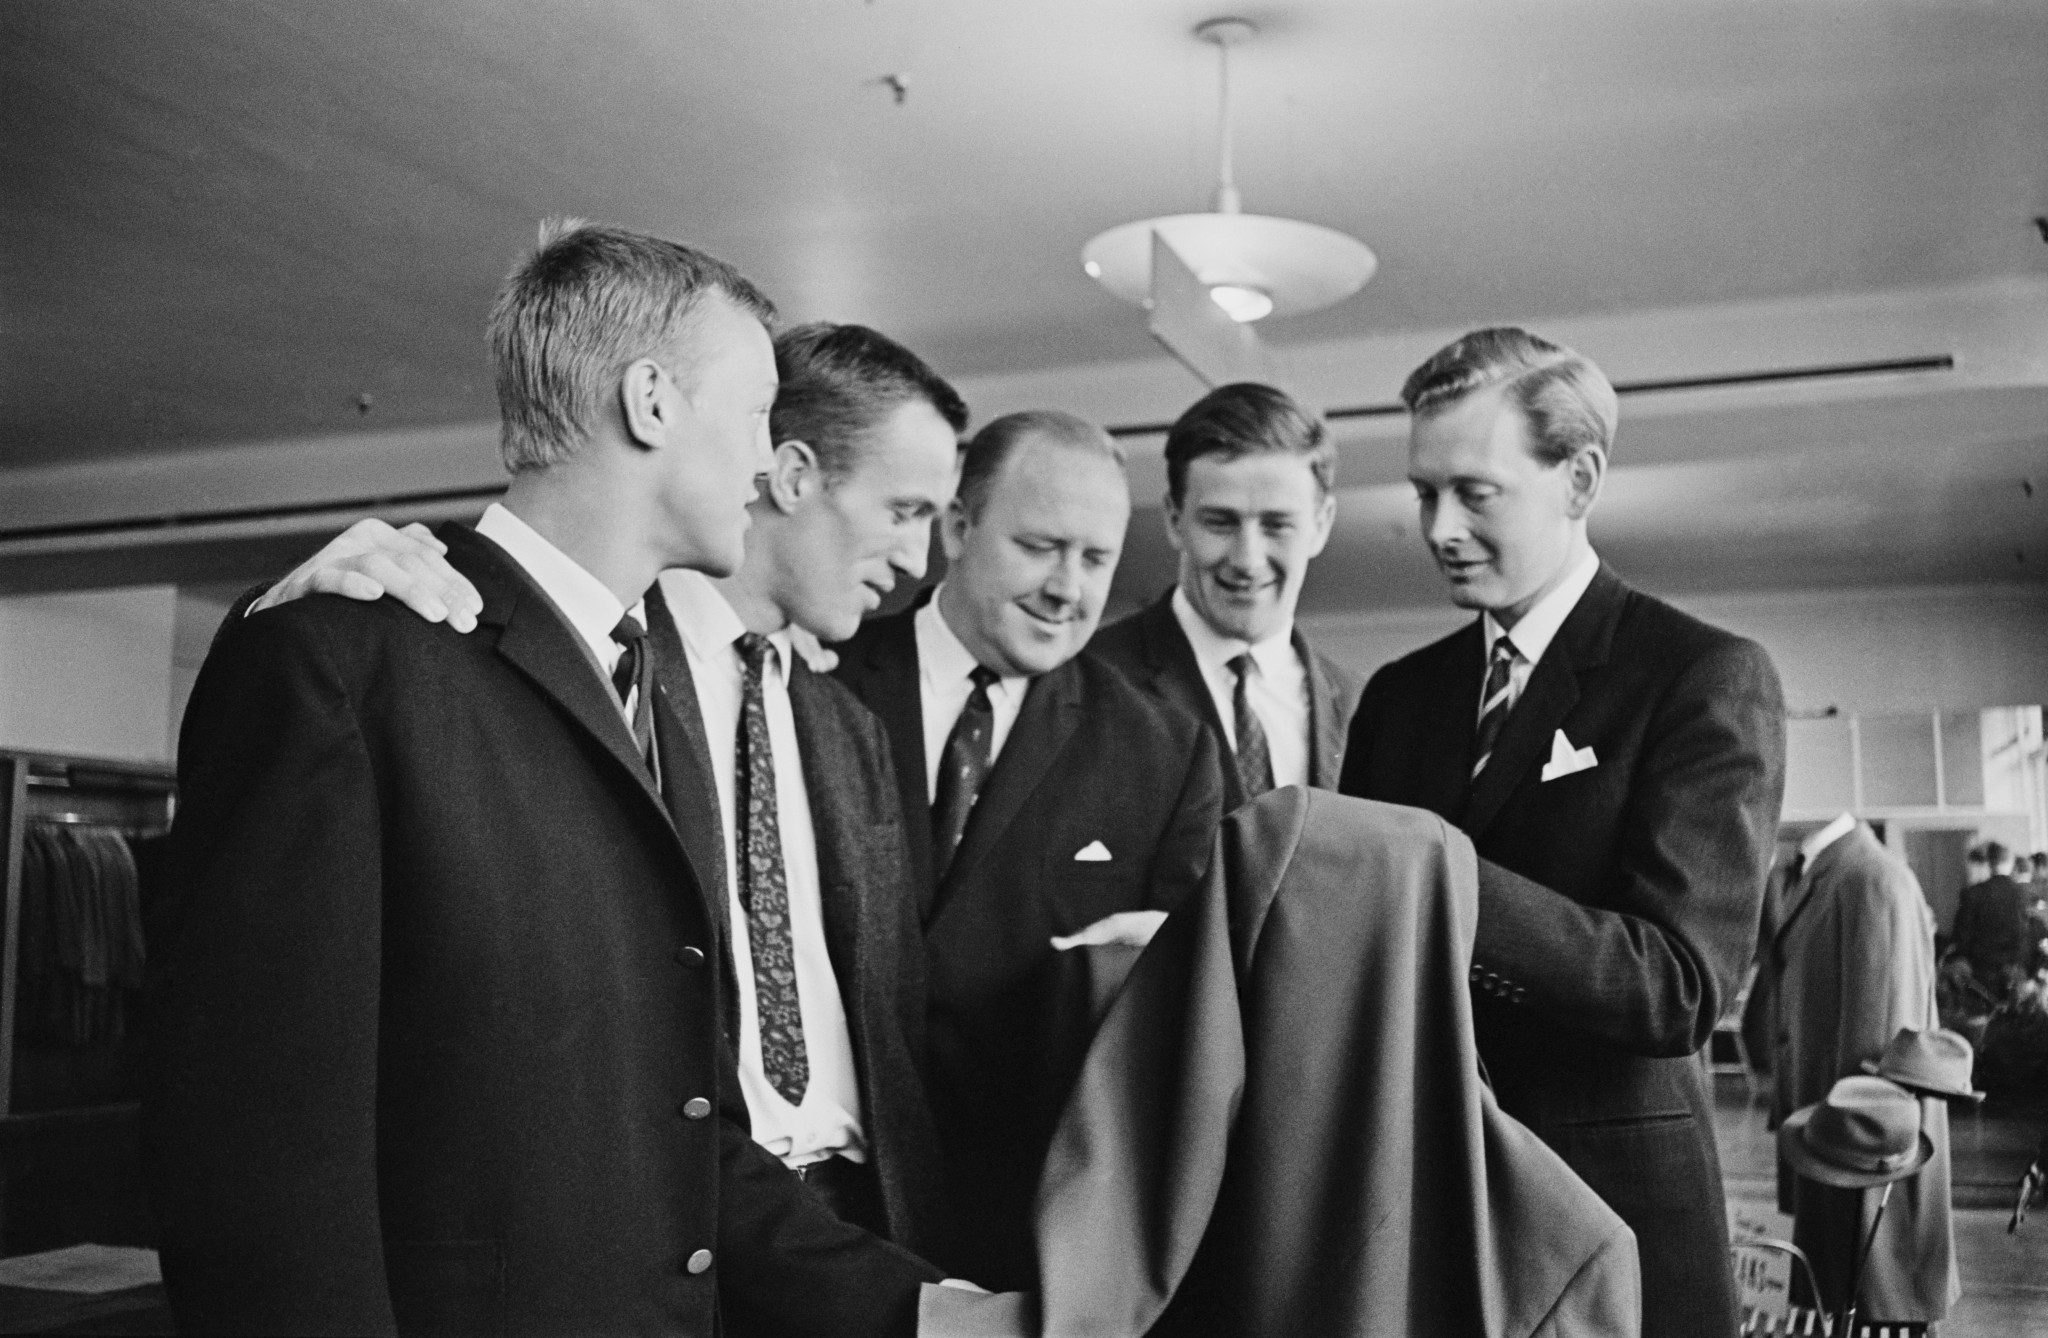 British judoka Tony Sweeney, Syd Hoare (1939 - 2017), Brian Jacks, and Alan Petherbridge trying their Tokyo Olympics outfits by Brian Hewson, Uk, 12th August 1964 ©Getty Images